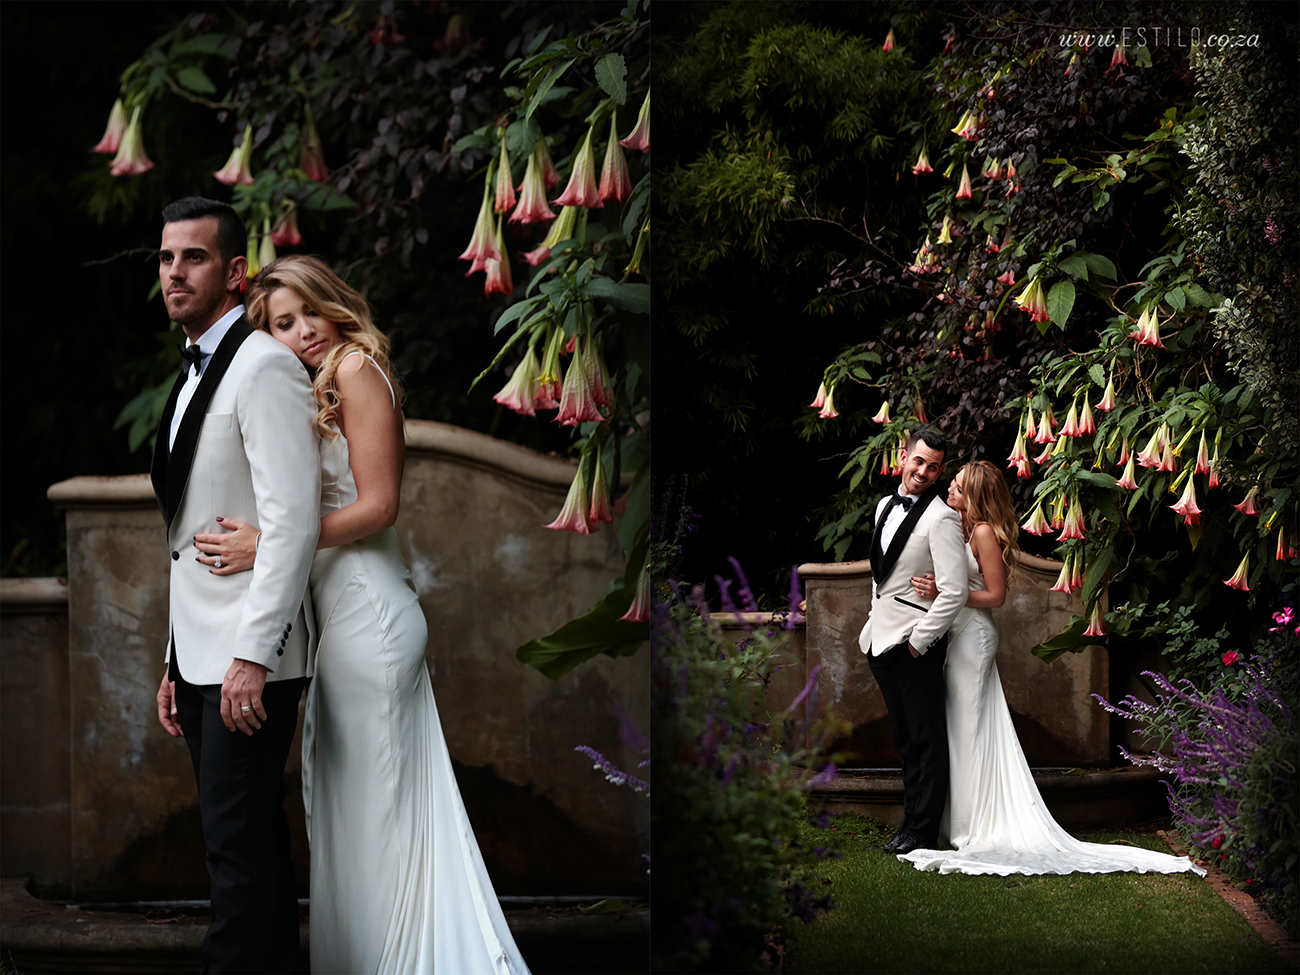 Le_Chatalet_Johannesburg_wedding_gatsby_themed_wedding_south_african_best_wedding_photographers_best_wedding_photographers_in_south_africa_johannesburg29.jpg